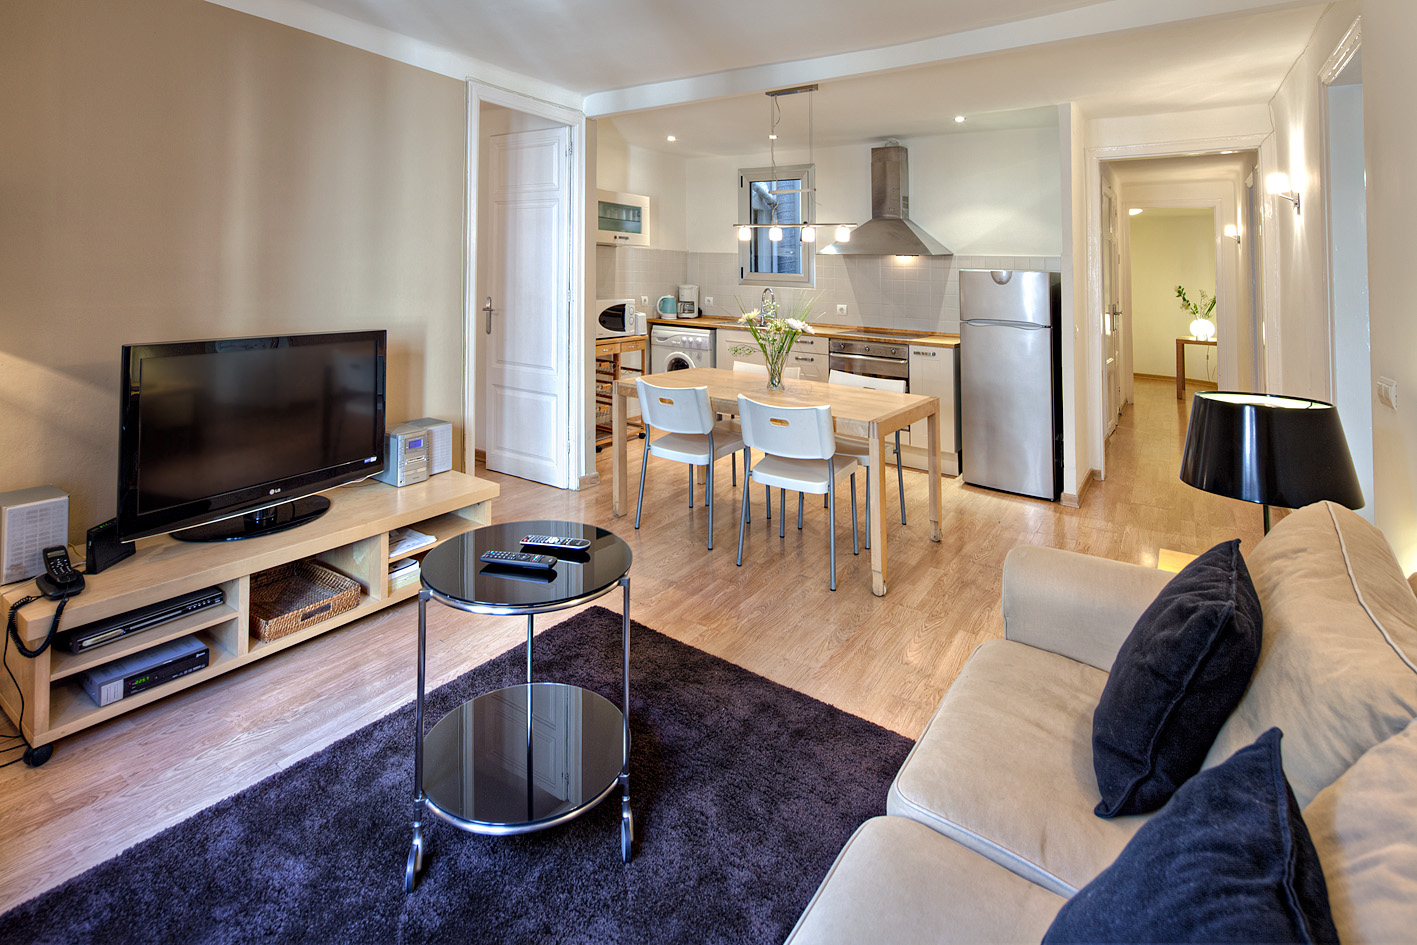 Art2 apartment barcelona Living room kitchen 1 Amazing Apartments next to Las Ramblas   the Heart of Barcelona